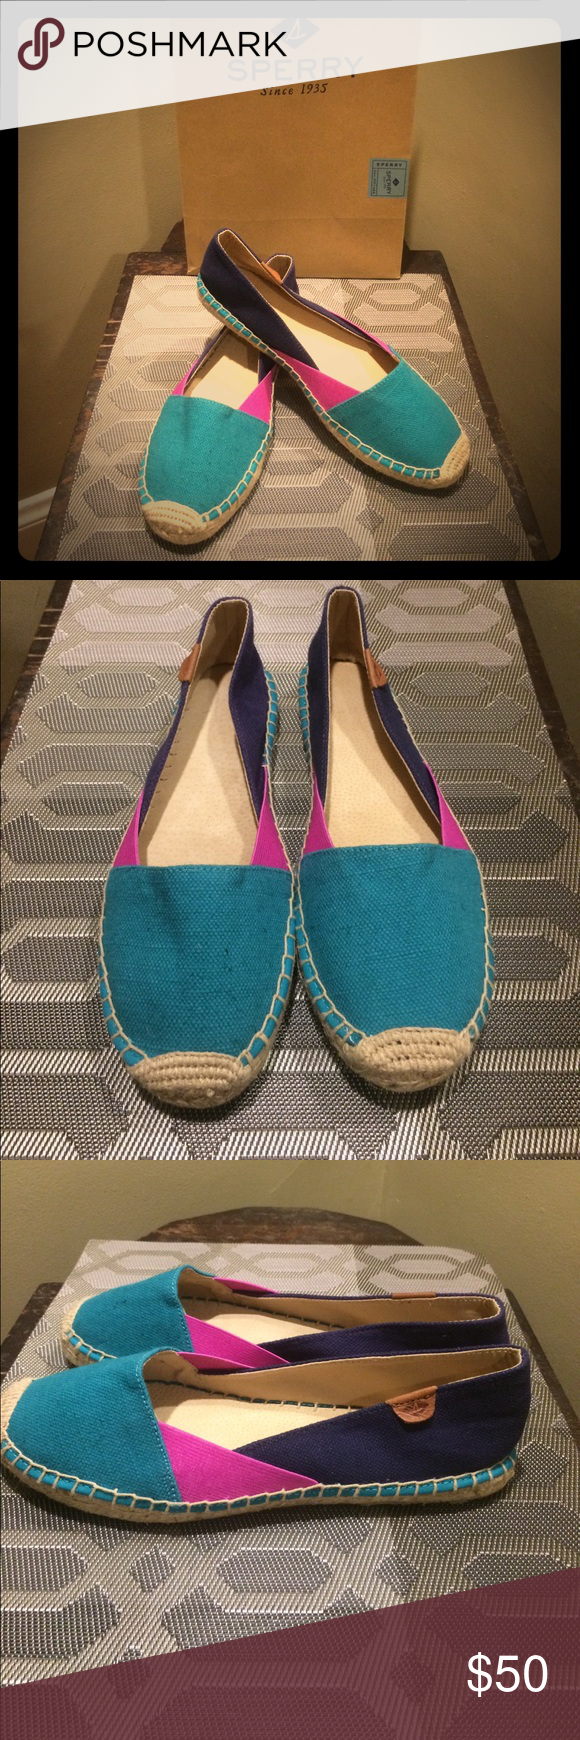 Sperry espadrilles! Multicolor espadrille slip ons from Sperry! New, never worn size 9. Colors are turquoise, magenta, and navy/dark purple! So cute for summer! Sperry Shoes